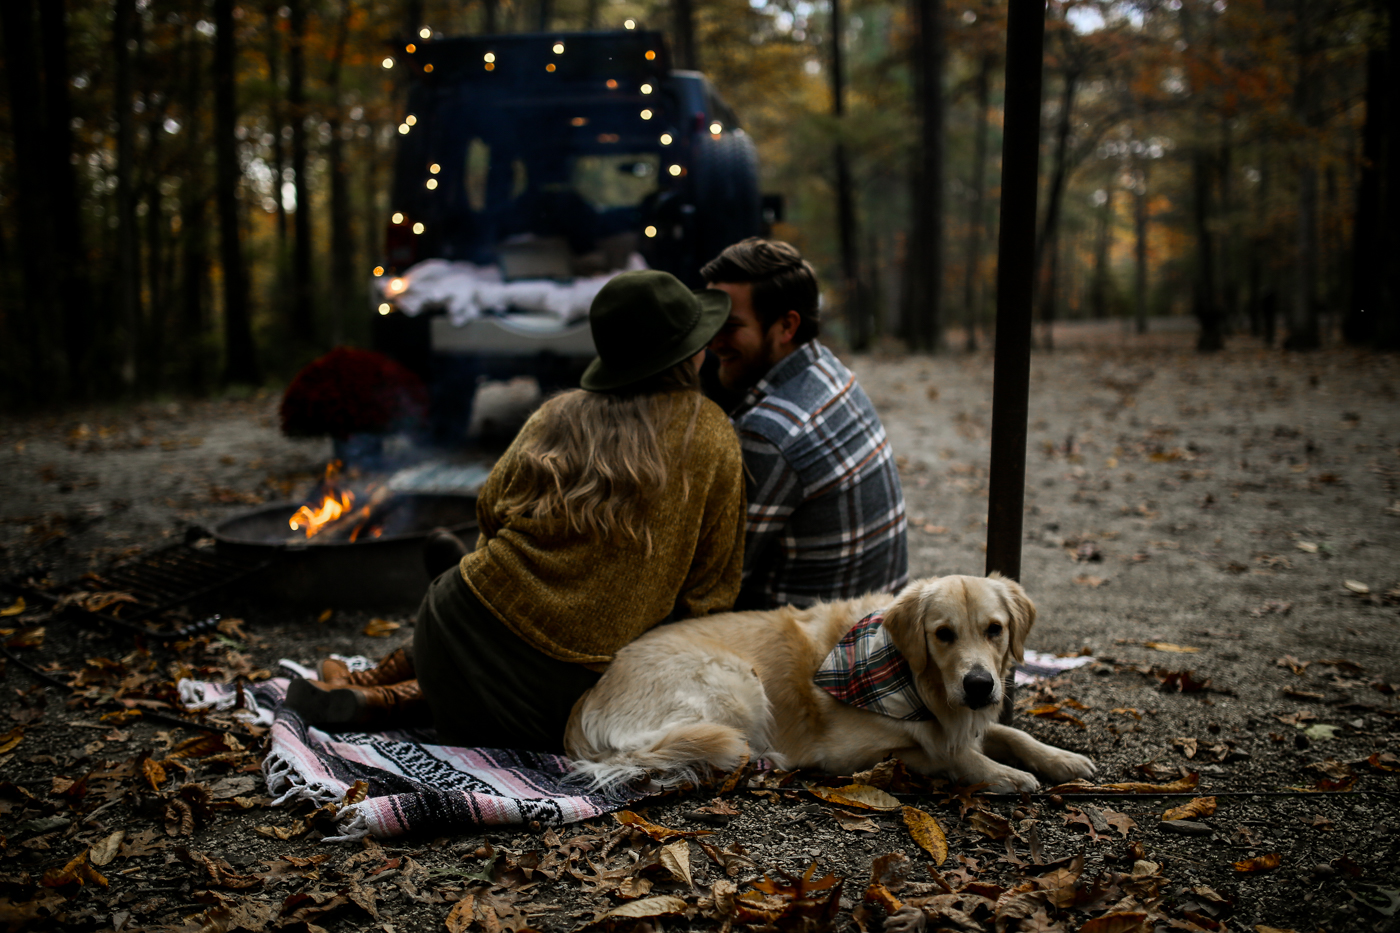 Red-River-Gorge-Campsite-Anniversary-Couples-Engagement-13.jpg